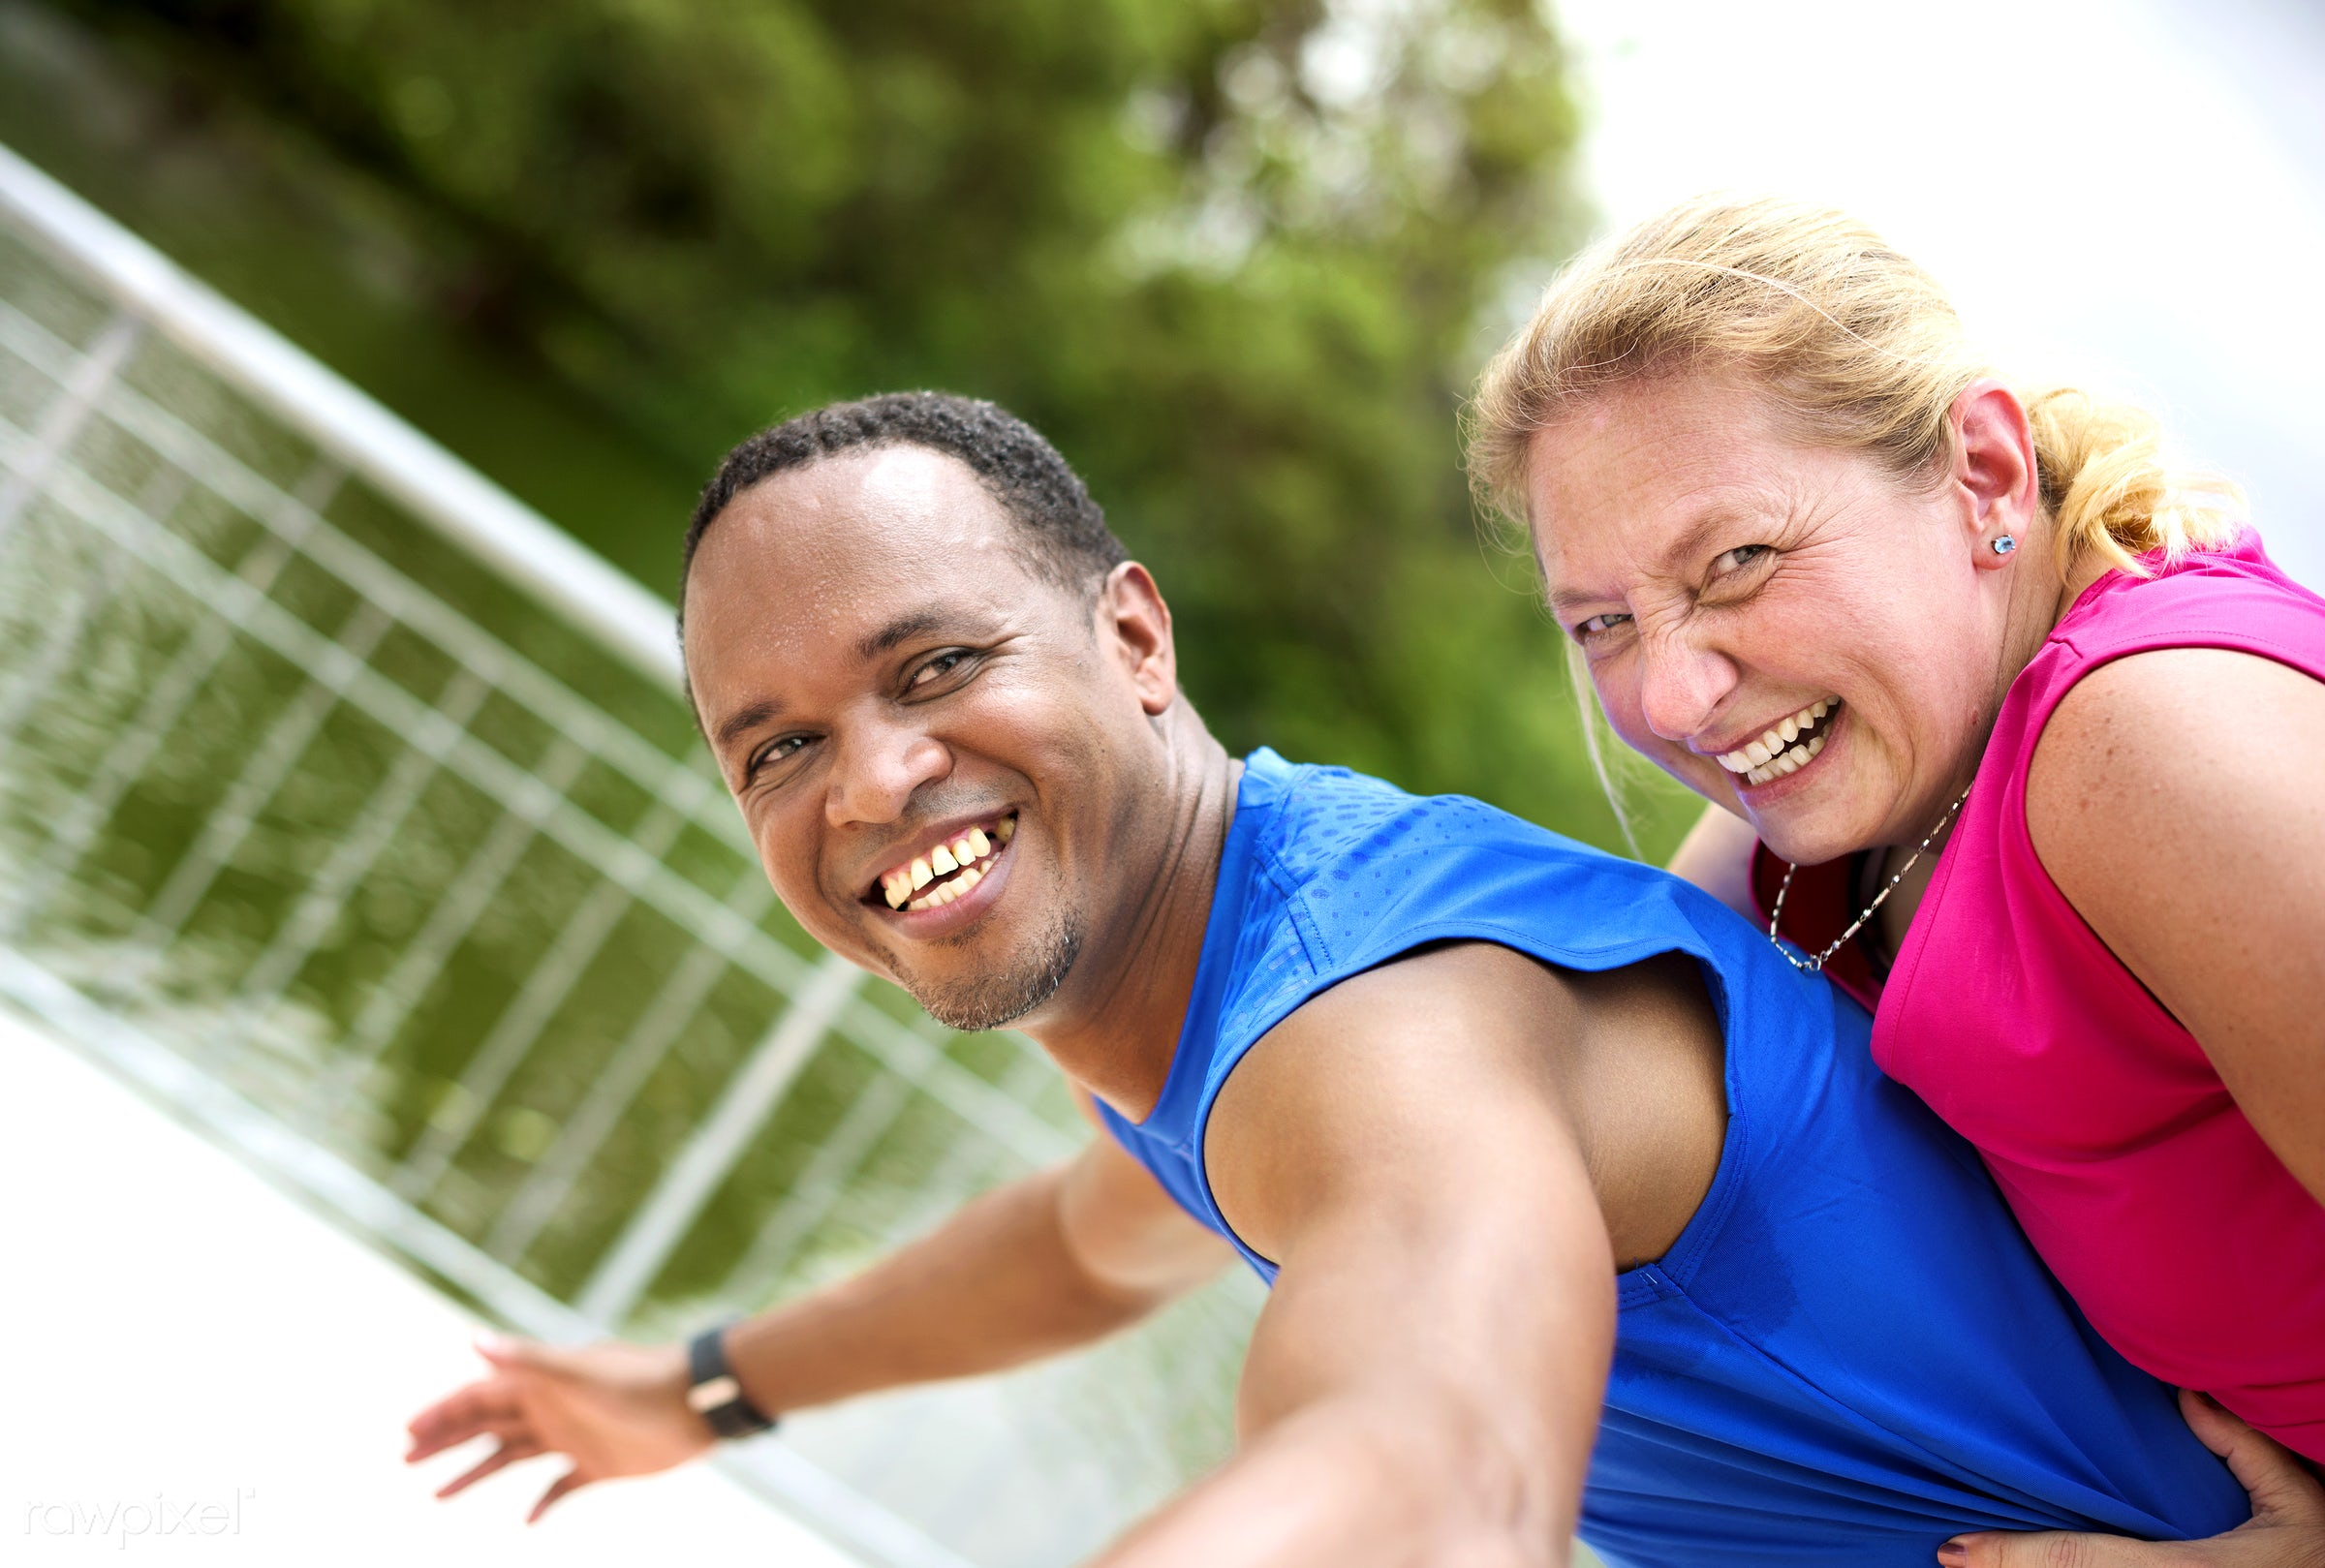 Interracial couple happy together in a park - adult, african, african descent, bonding, cheerful, clothing, couple, exercise...